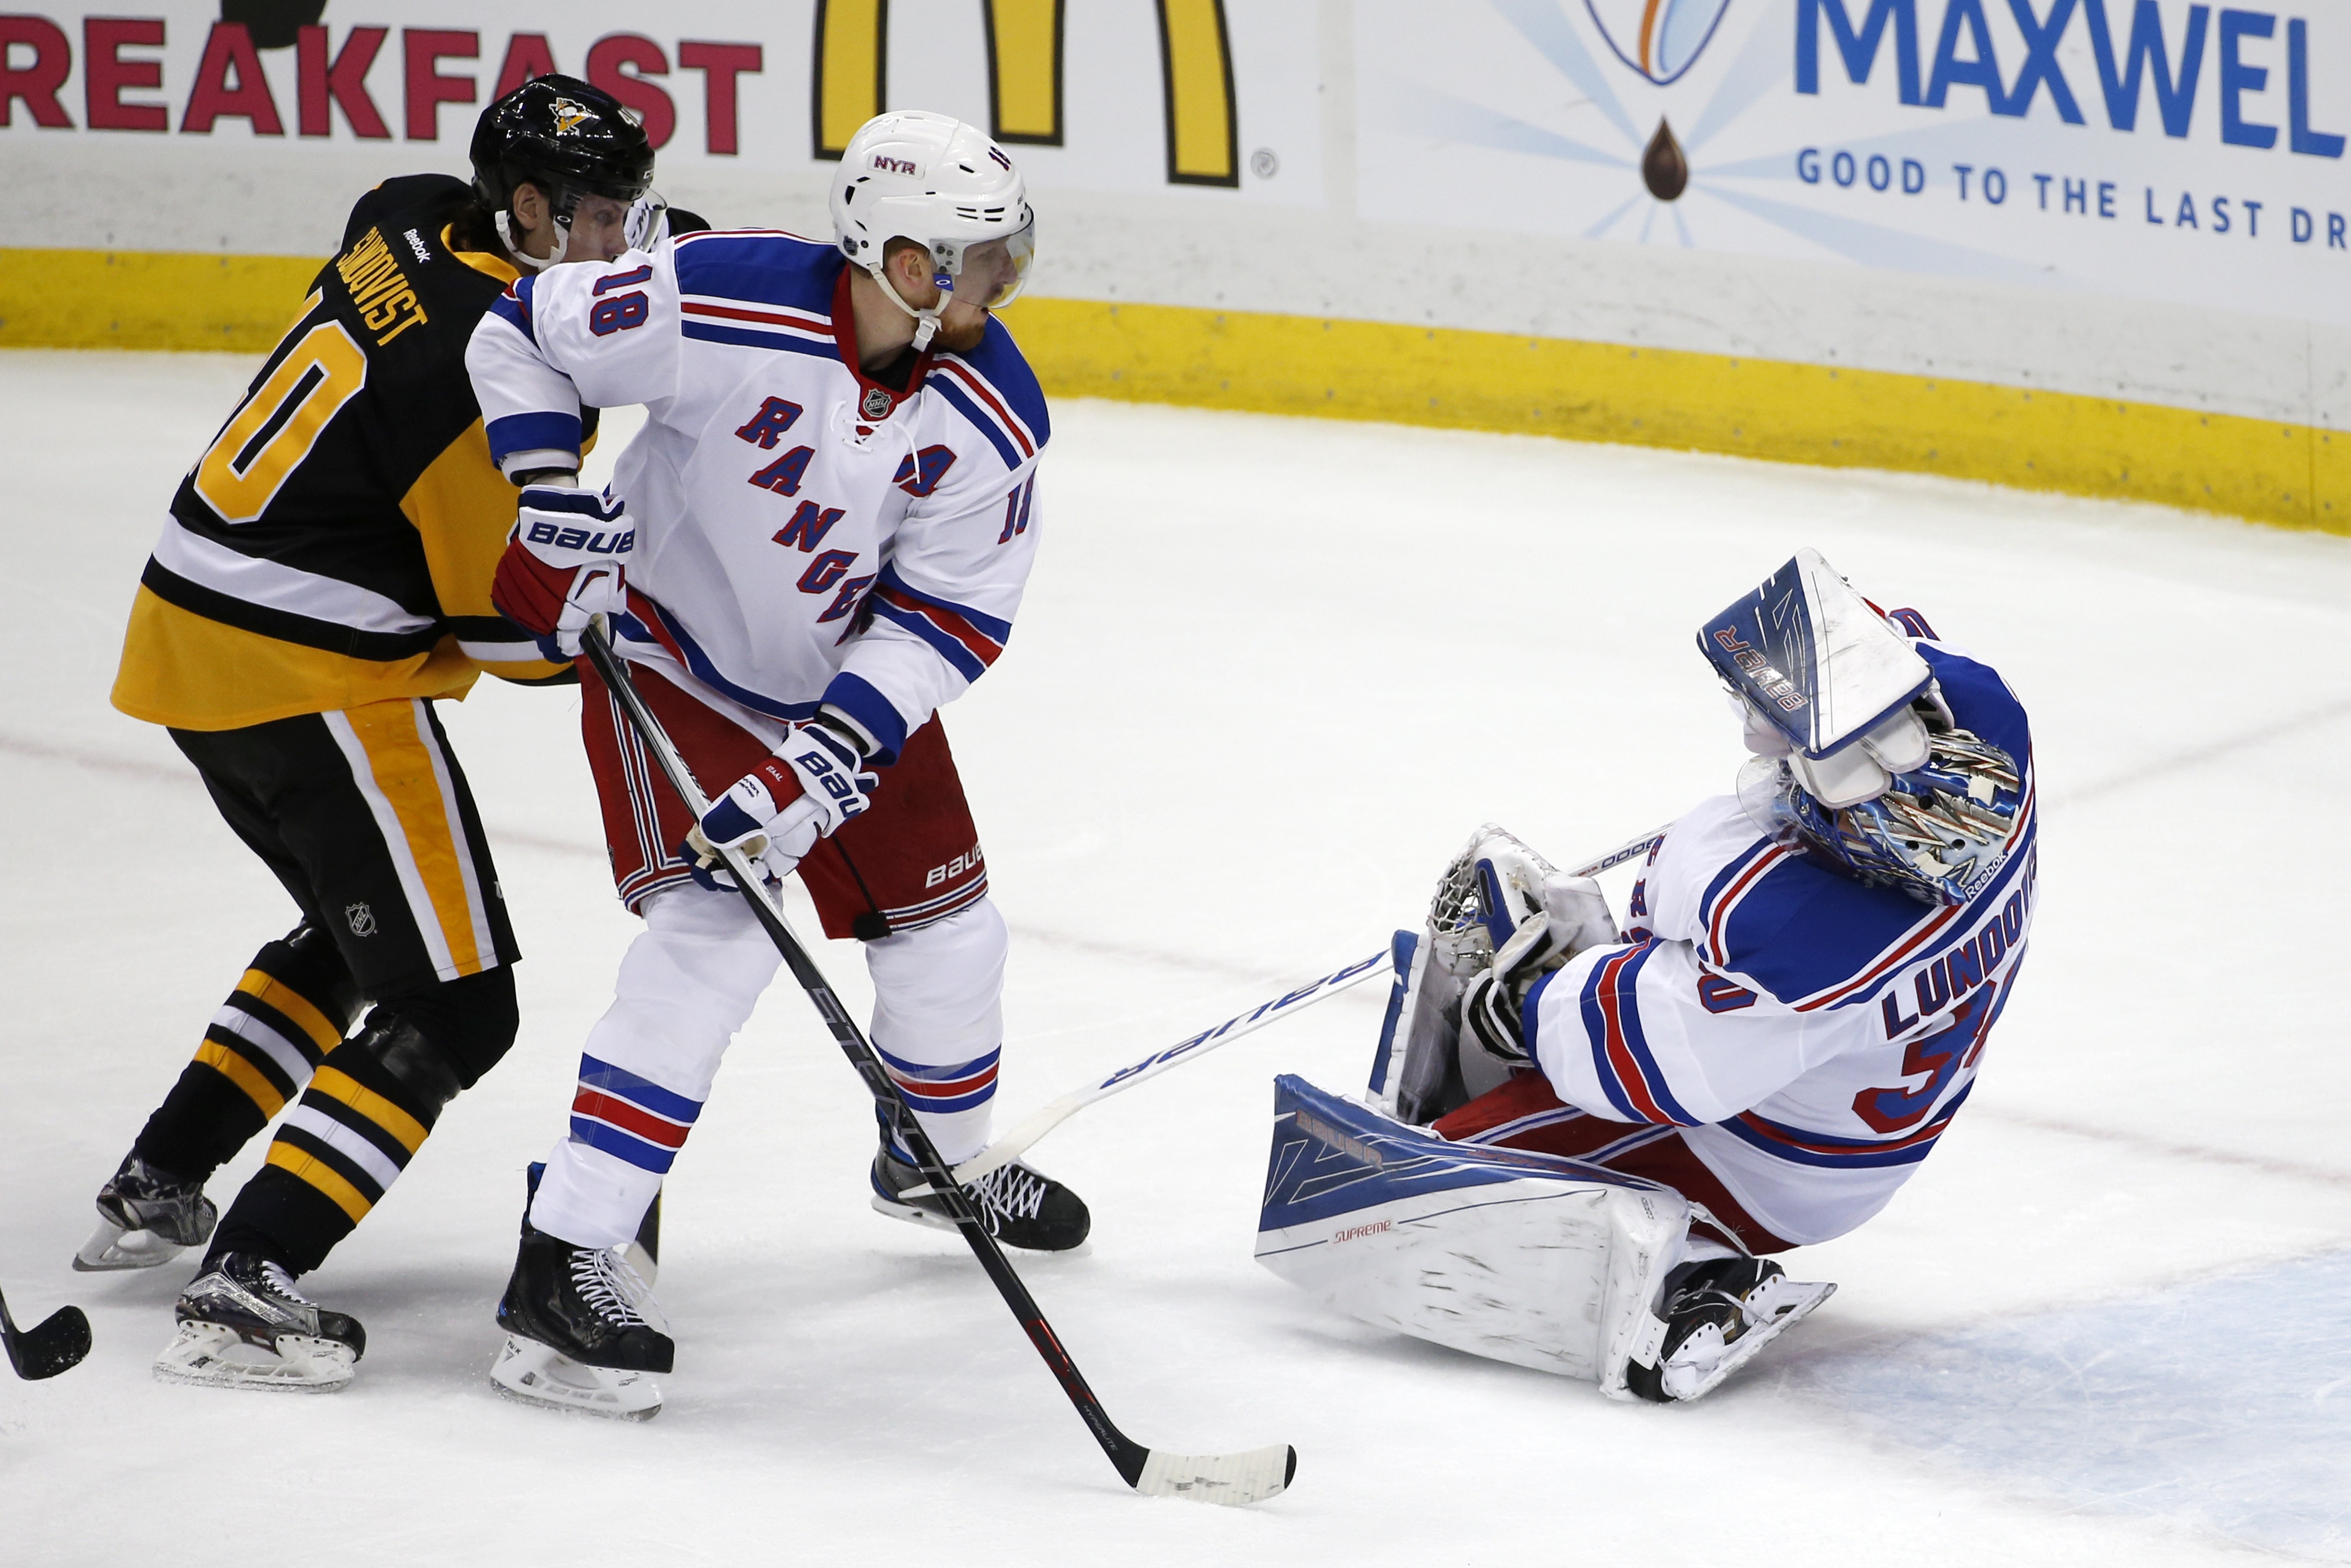 New York Rangers goalie Henrik Lundqvist (30) falls to the ice after getting a stick to the face during the first period of a first-round NHL playoff hockey game against the Pittsburgh Penguins in Pittsburgh, Wednesday, April 13, 2016. Lundqvist remained